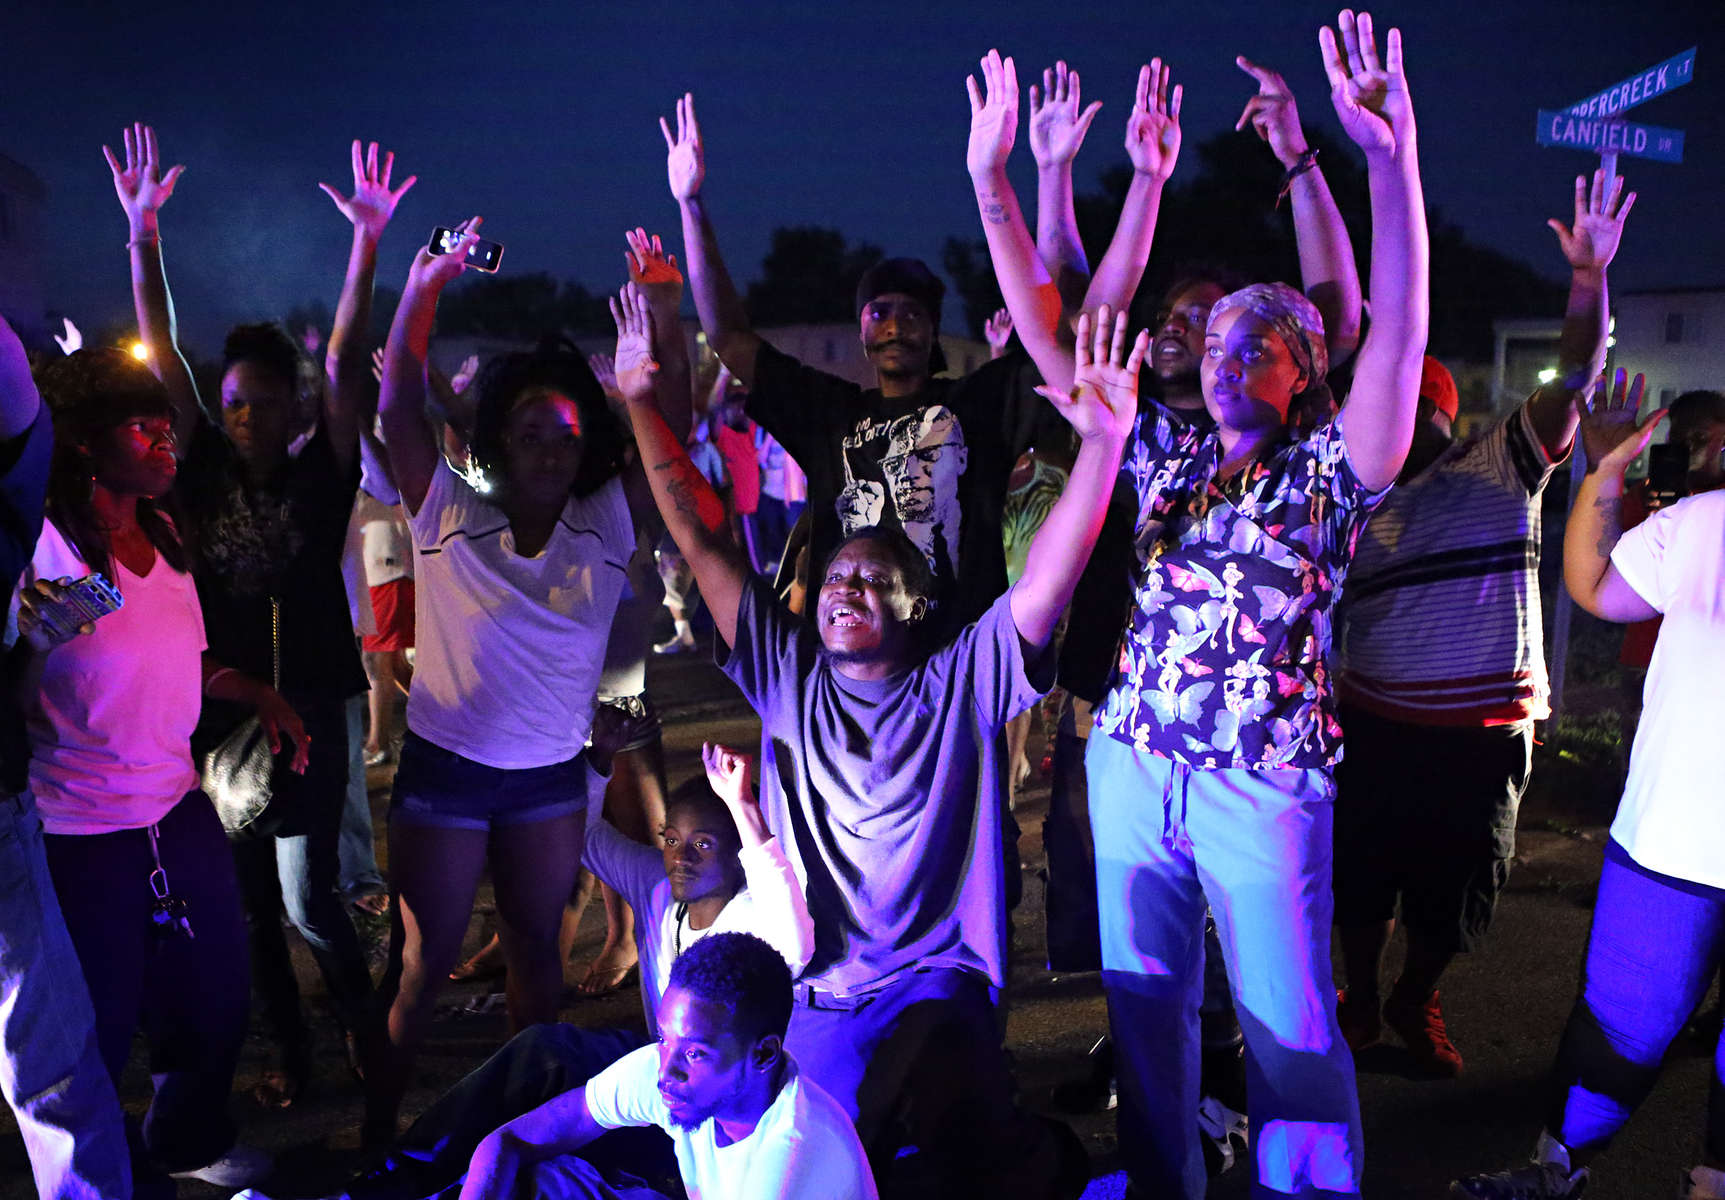 {quote}Don't shoot us{quote} cries out the crowd as they confront police officers arriving to break up a crowd on Canfield Dr. in Ferguson, Mo. on Saturday, Aug. 9, 2014. Earlier in the day police had shot and killed Michael Brown, an unarmed18 year-old man, and community members turned out large numbers at the scene to express their outrage.